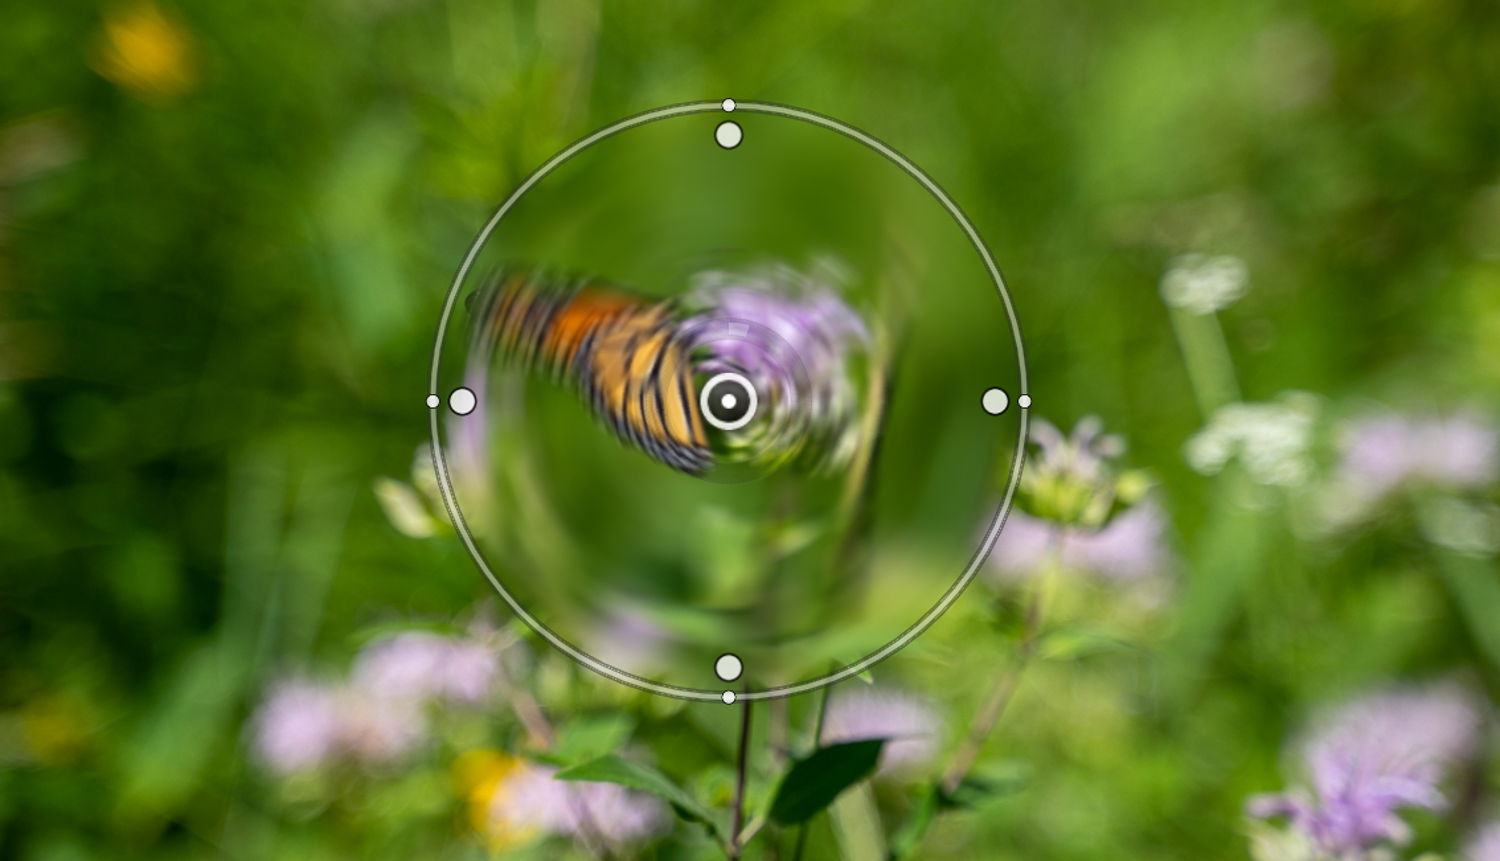 spin blur adjustment points - How to simulate a Swirly Bokeh in Photoshop